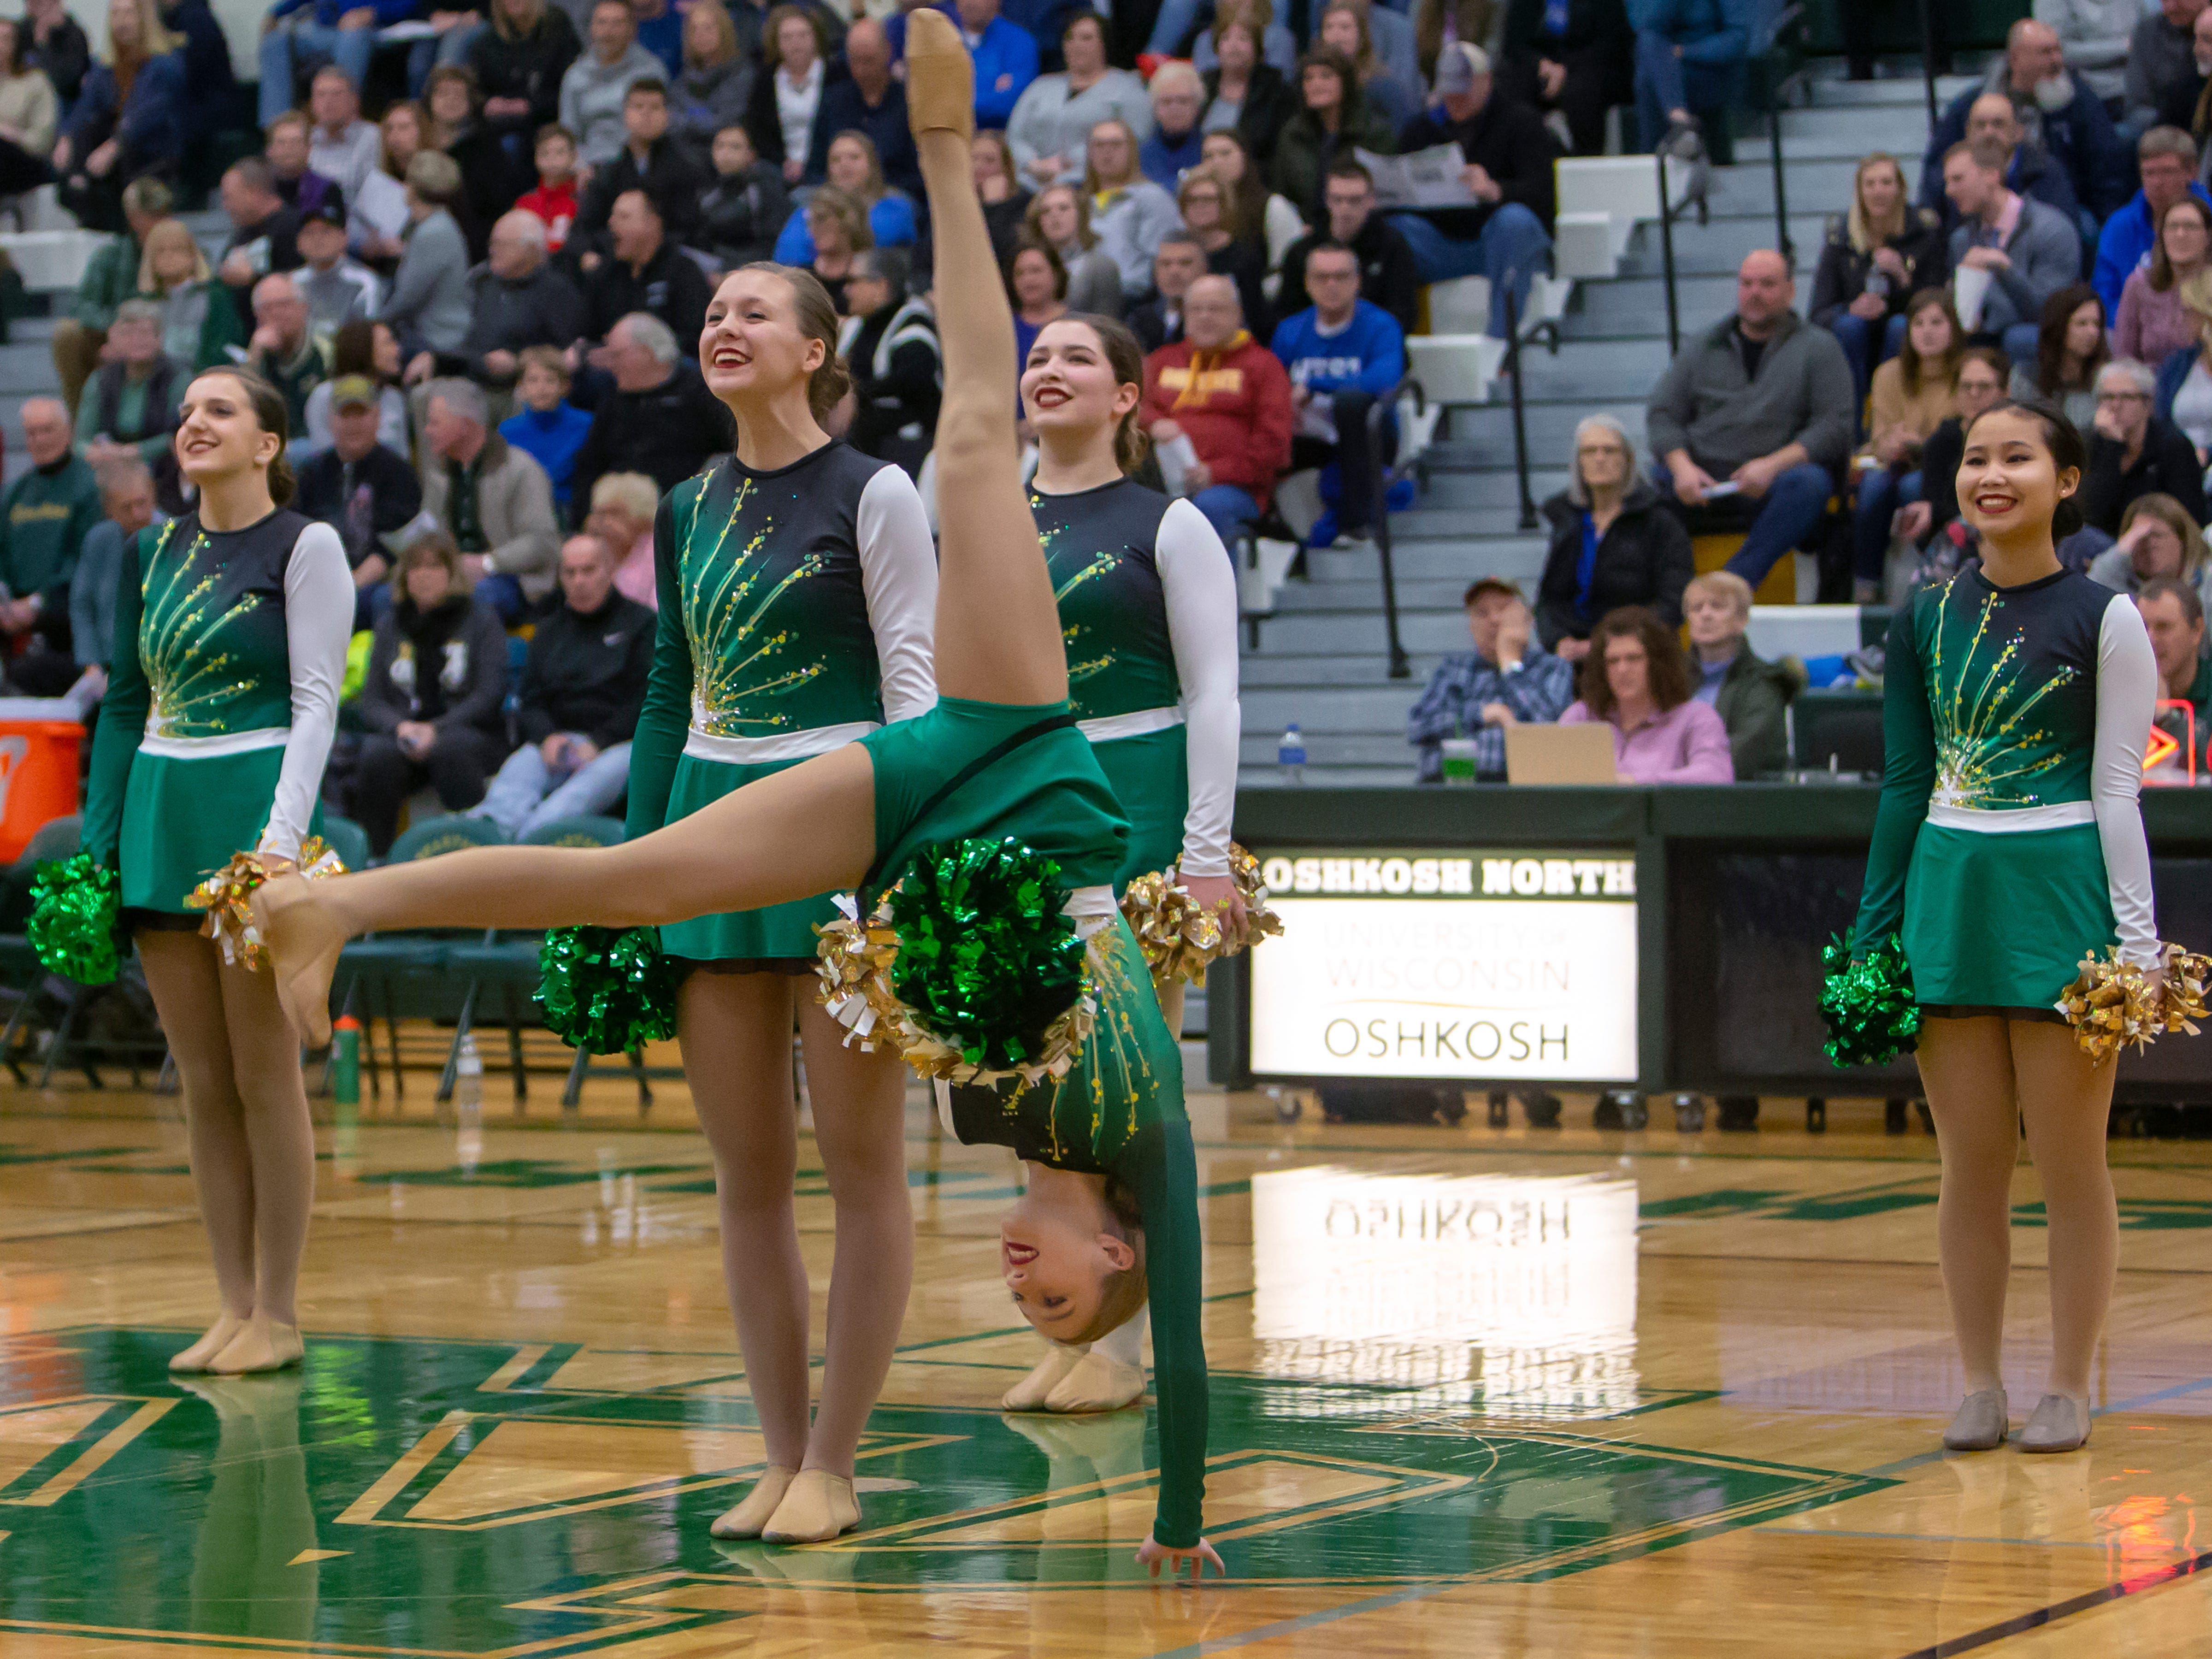 Oshkosh North dance team performs during halftime at the Oshkosh North High School on Tuesday, January 8, 2019.